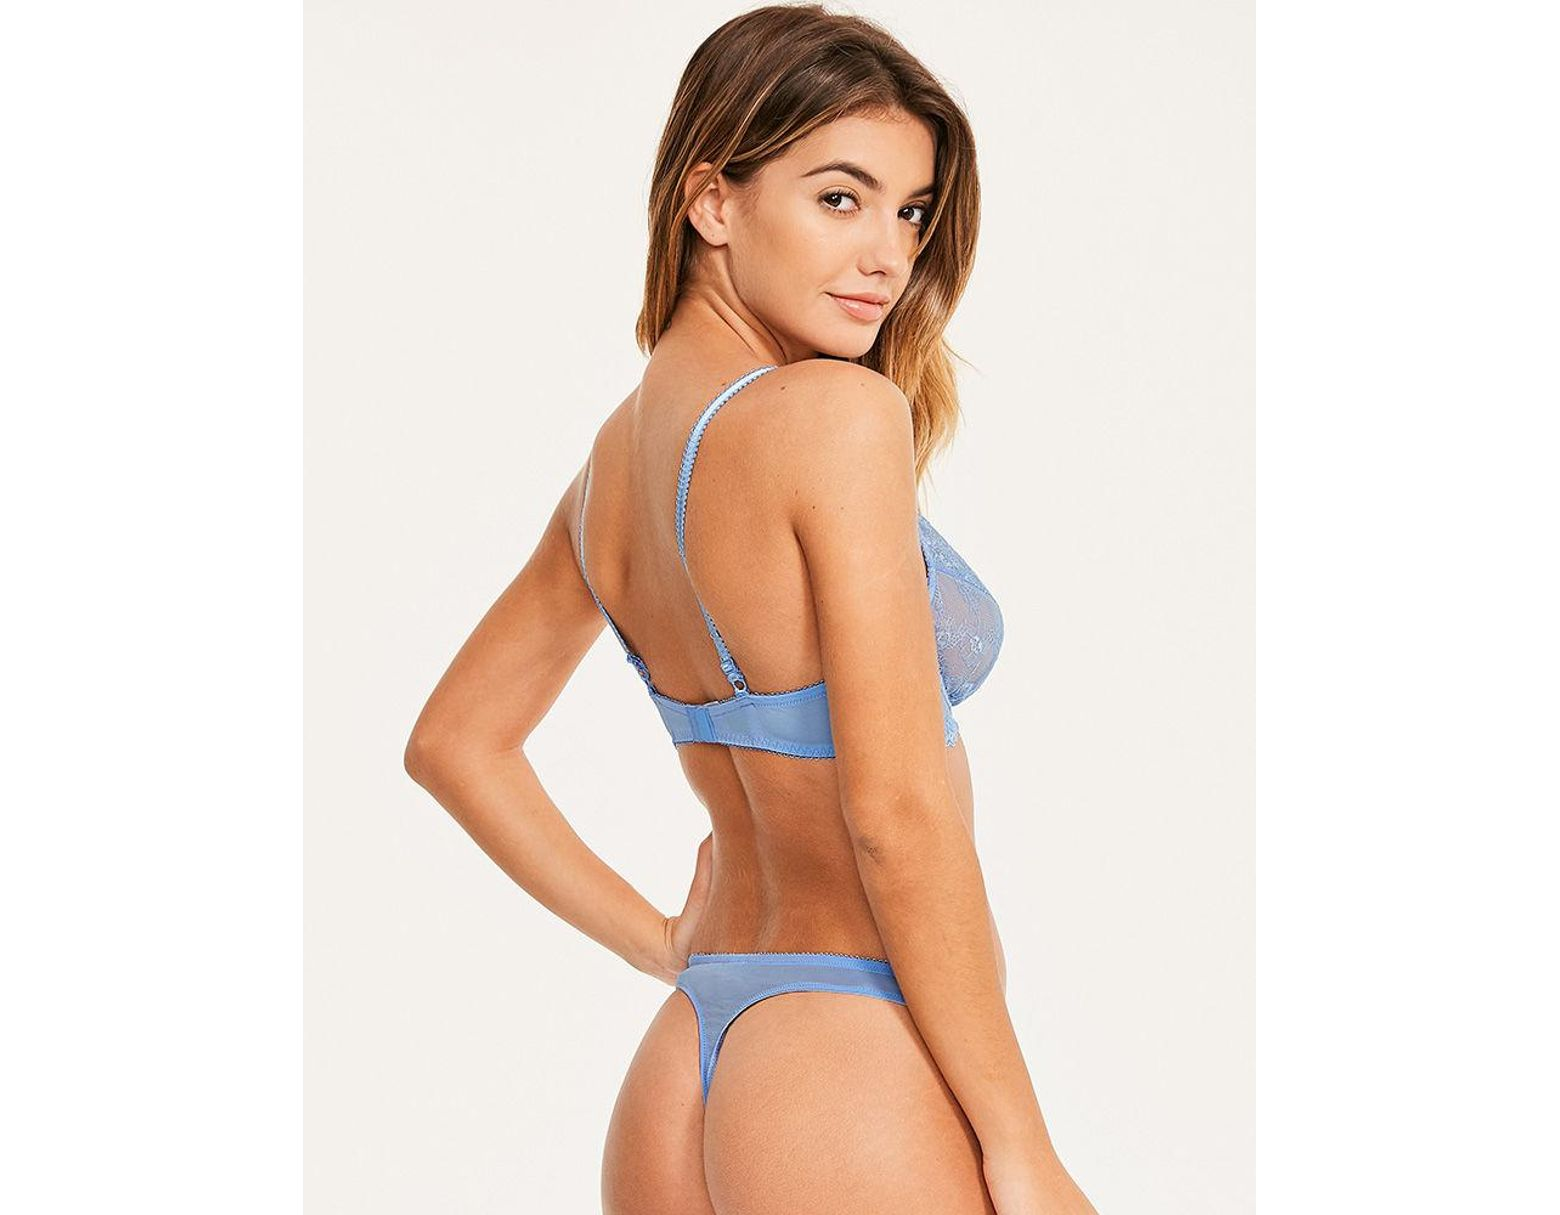 a44d20aeb Figleaves Juliette Lace Underwired Non-pad Bra B-GG Cup in Blue - Lyst